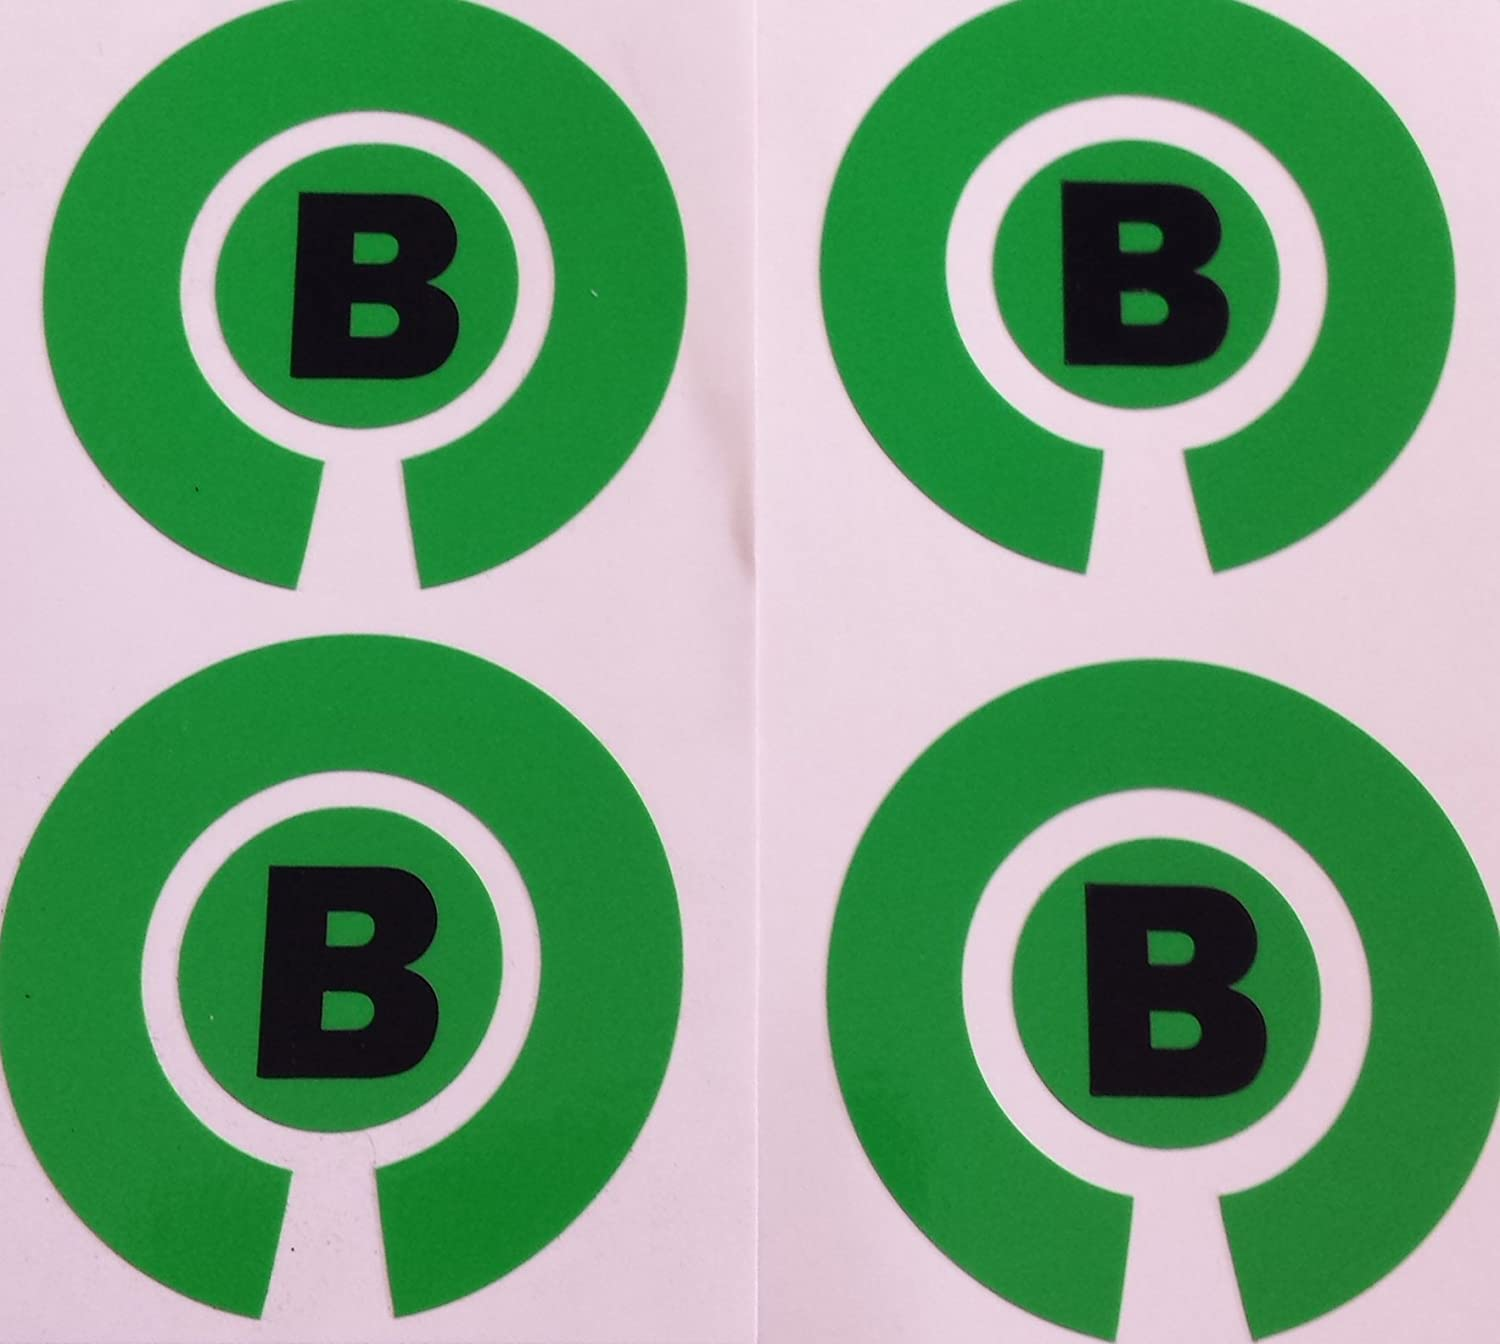 Crown Green Lawn Indoor Bowls Adhesive Lettered Coloured Marker Labels Set of 4 Green, B